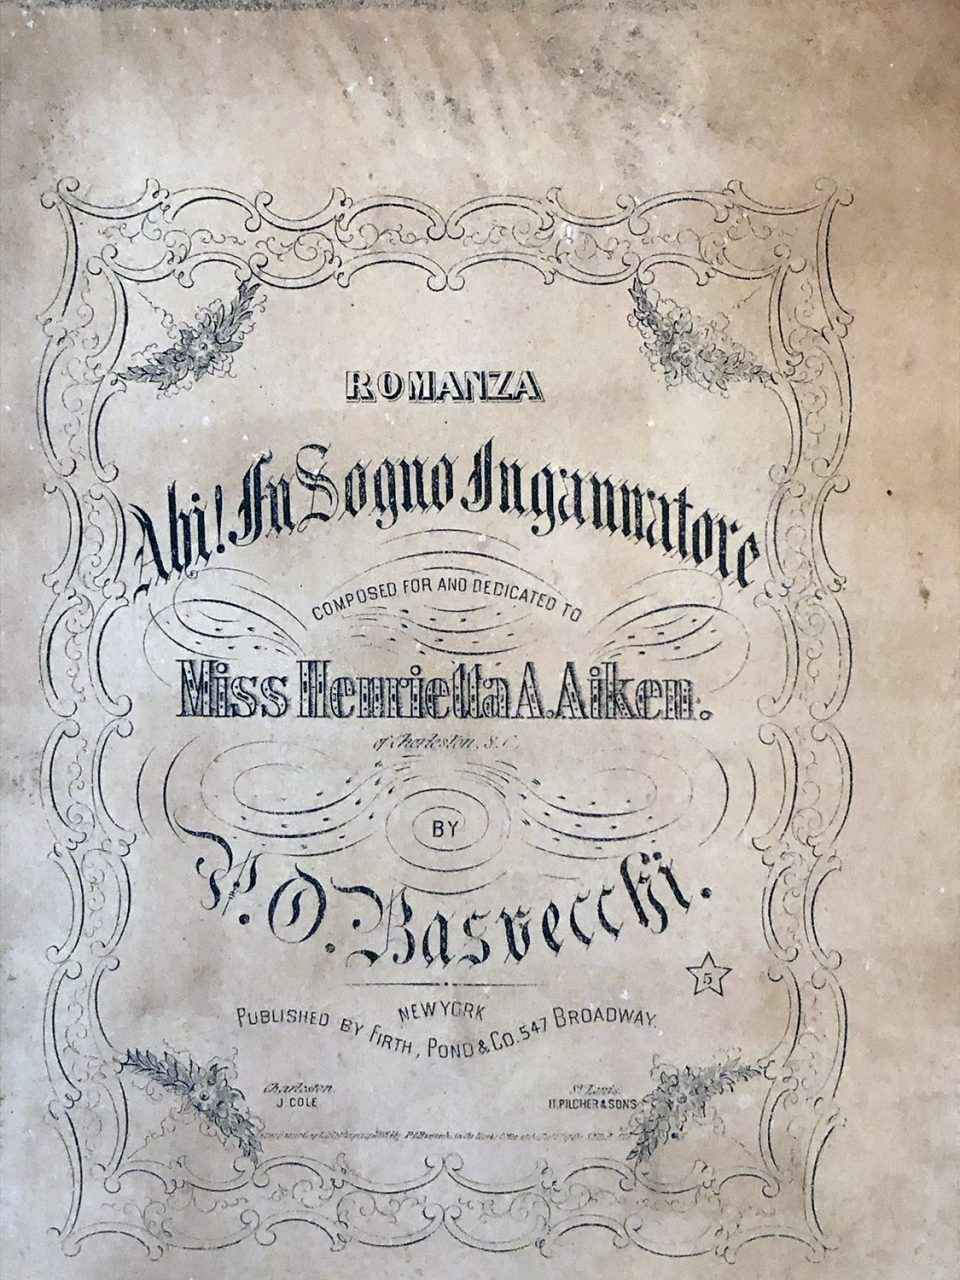 A piece of sheet music composed and dedicated to the lady of the house